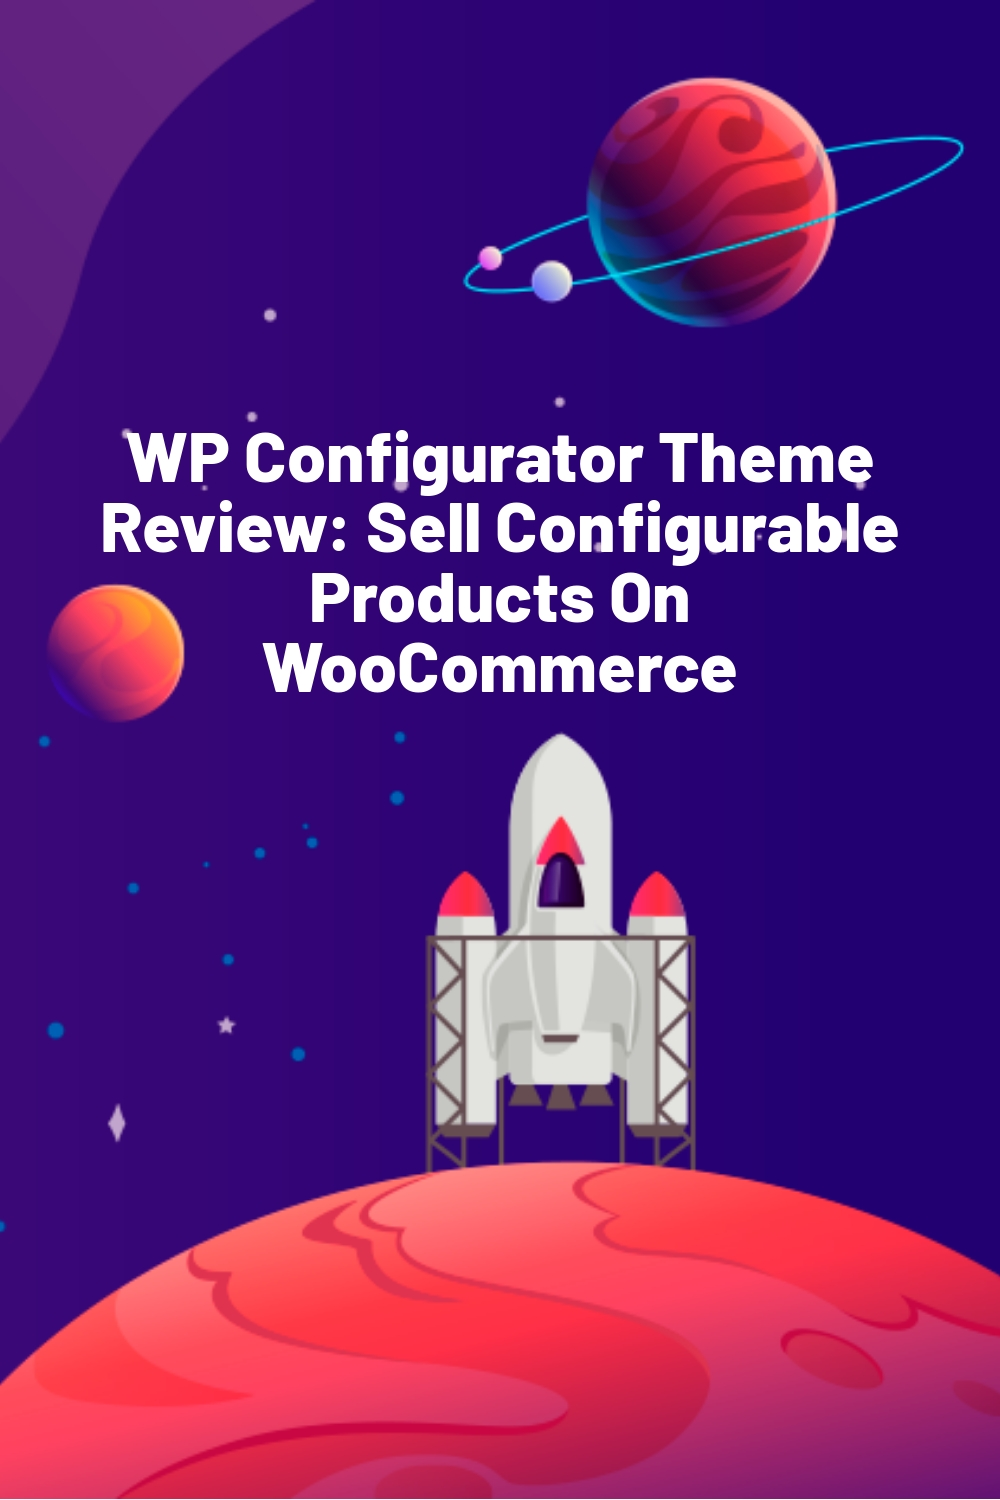 WP Configurator Theme Review: Sell Configurable Products On WooCommerce